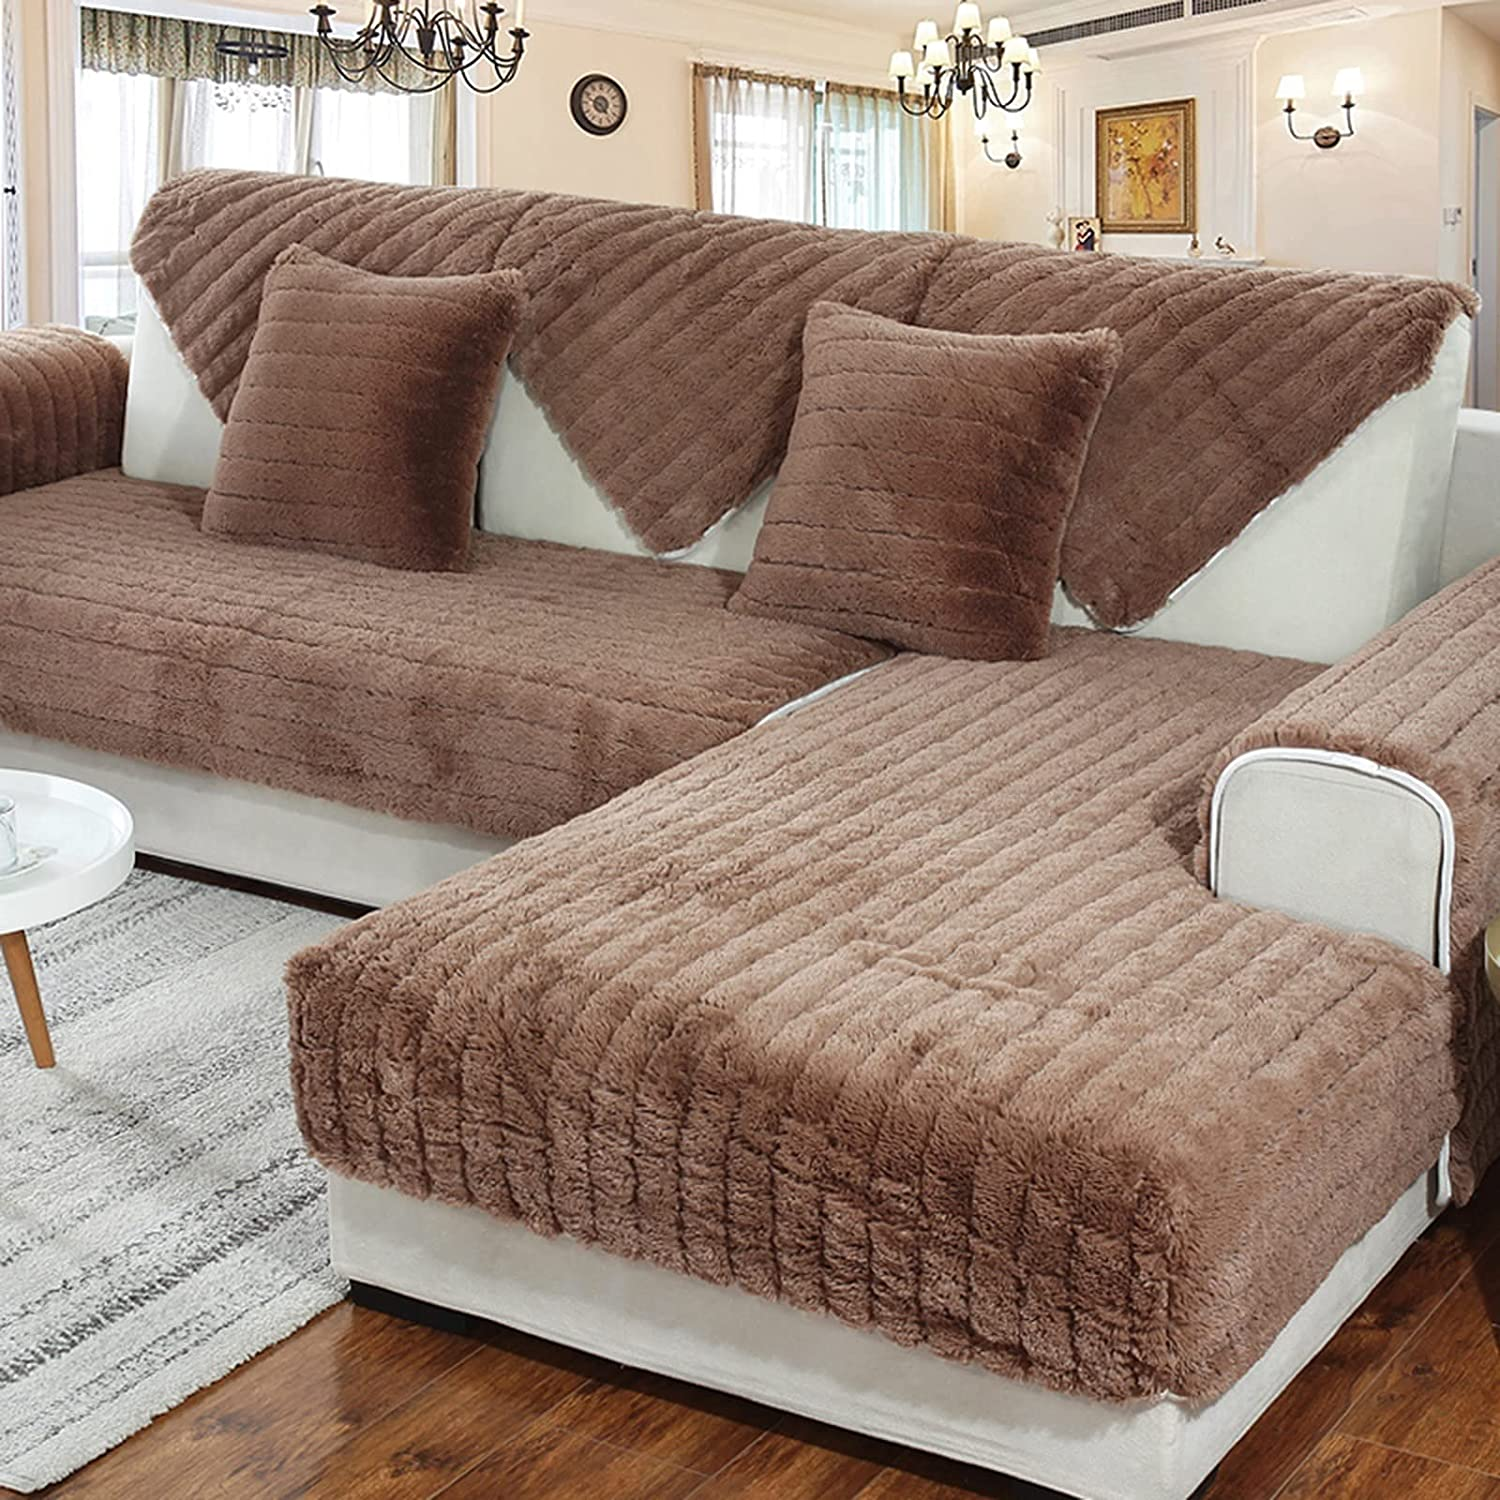 ZYZCJT Plush Couch Cover1 Soft Sold Quantity limited 1 Cover by Sofa Ultra-Cheap Deals